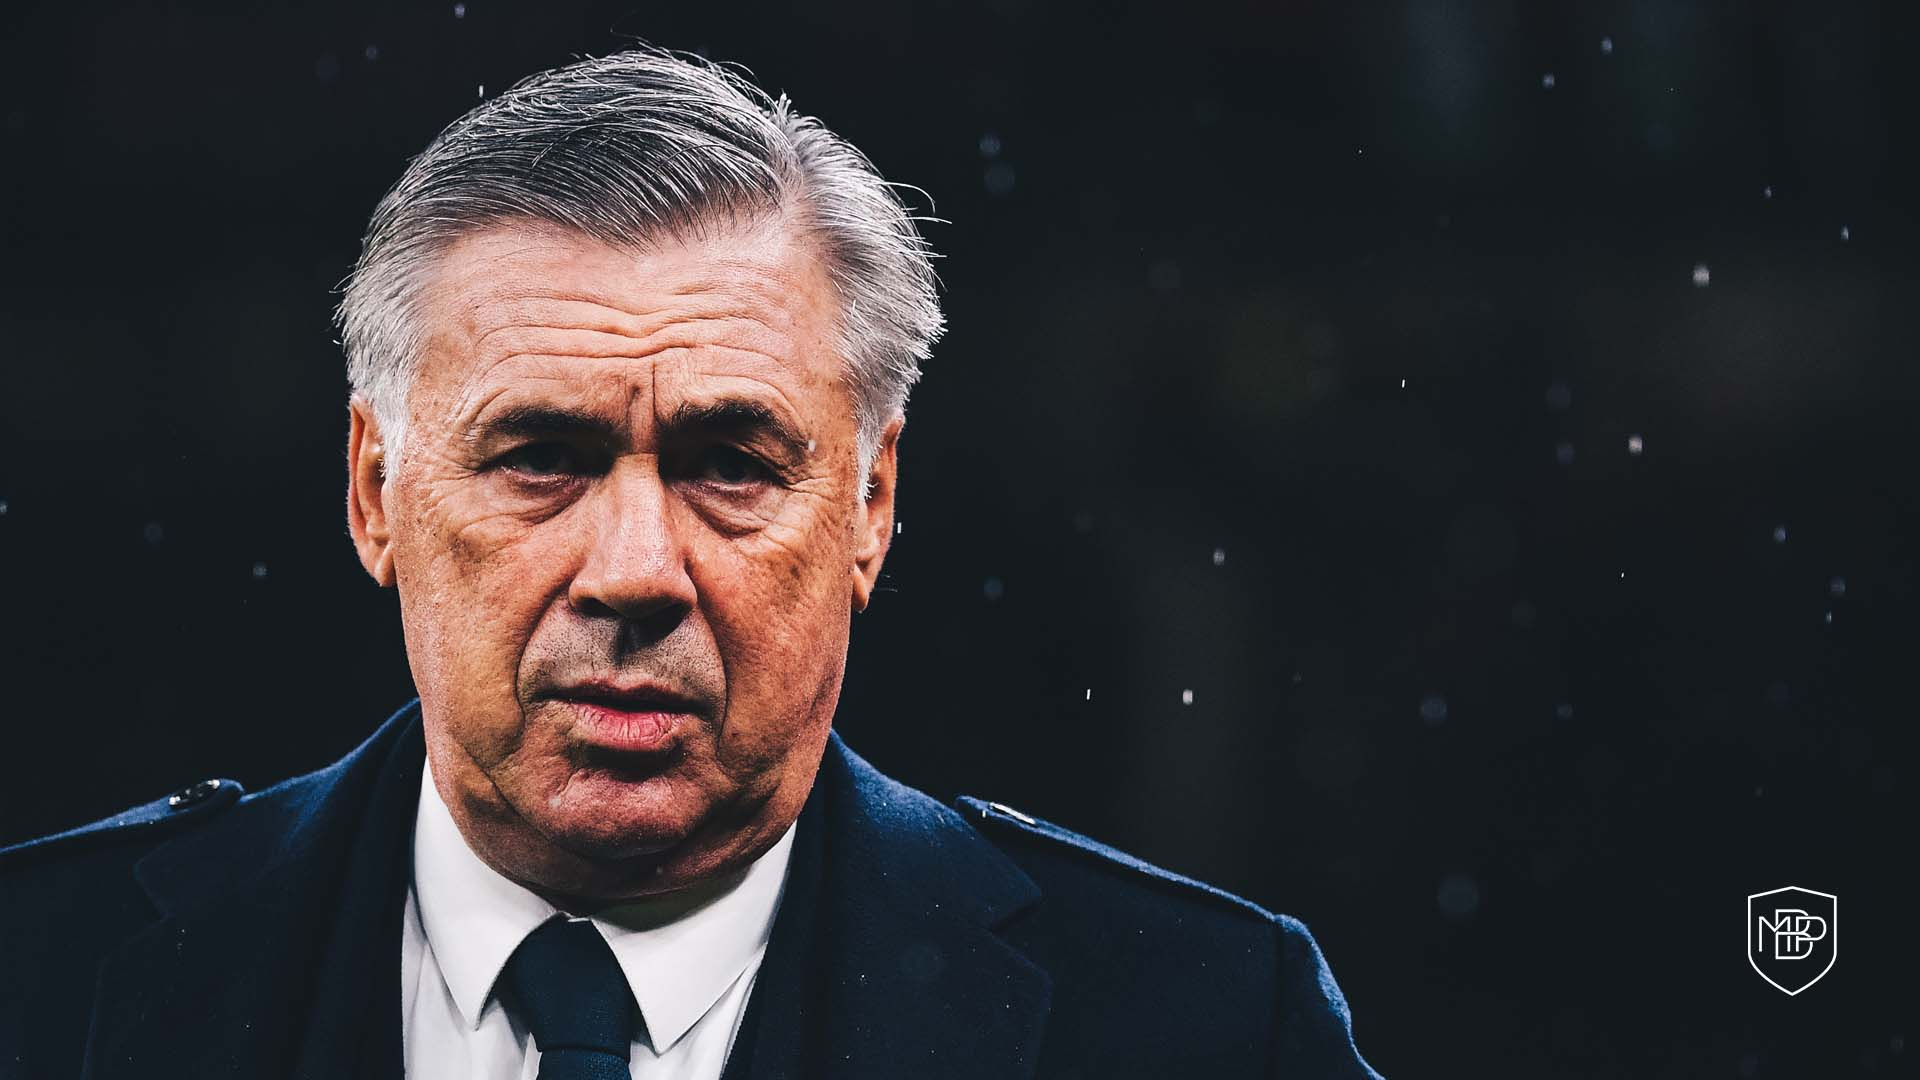 What to expect from Carlo Ancelotti's new Real Madrid?